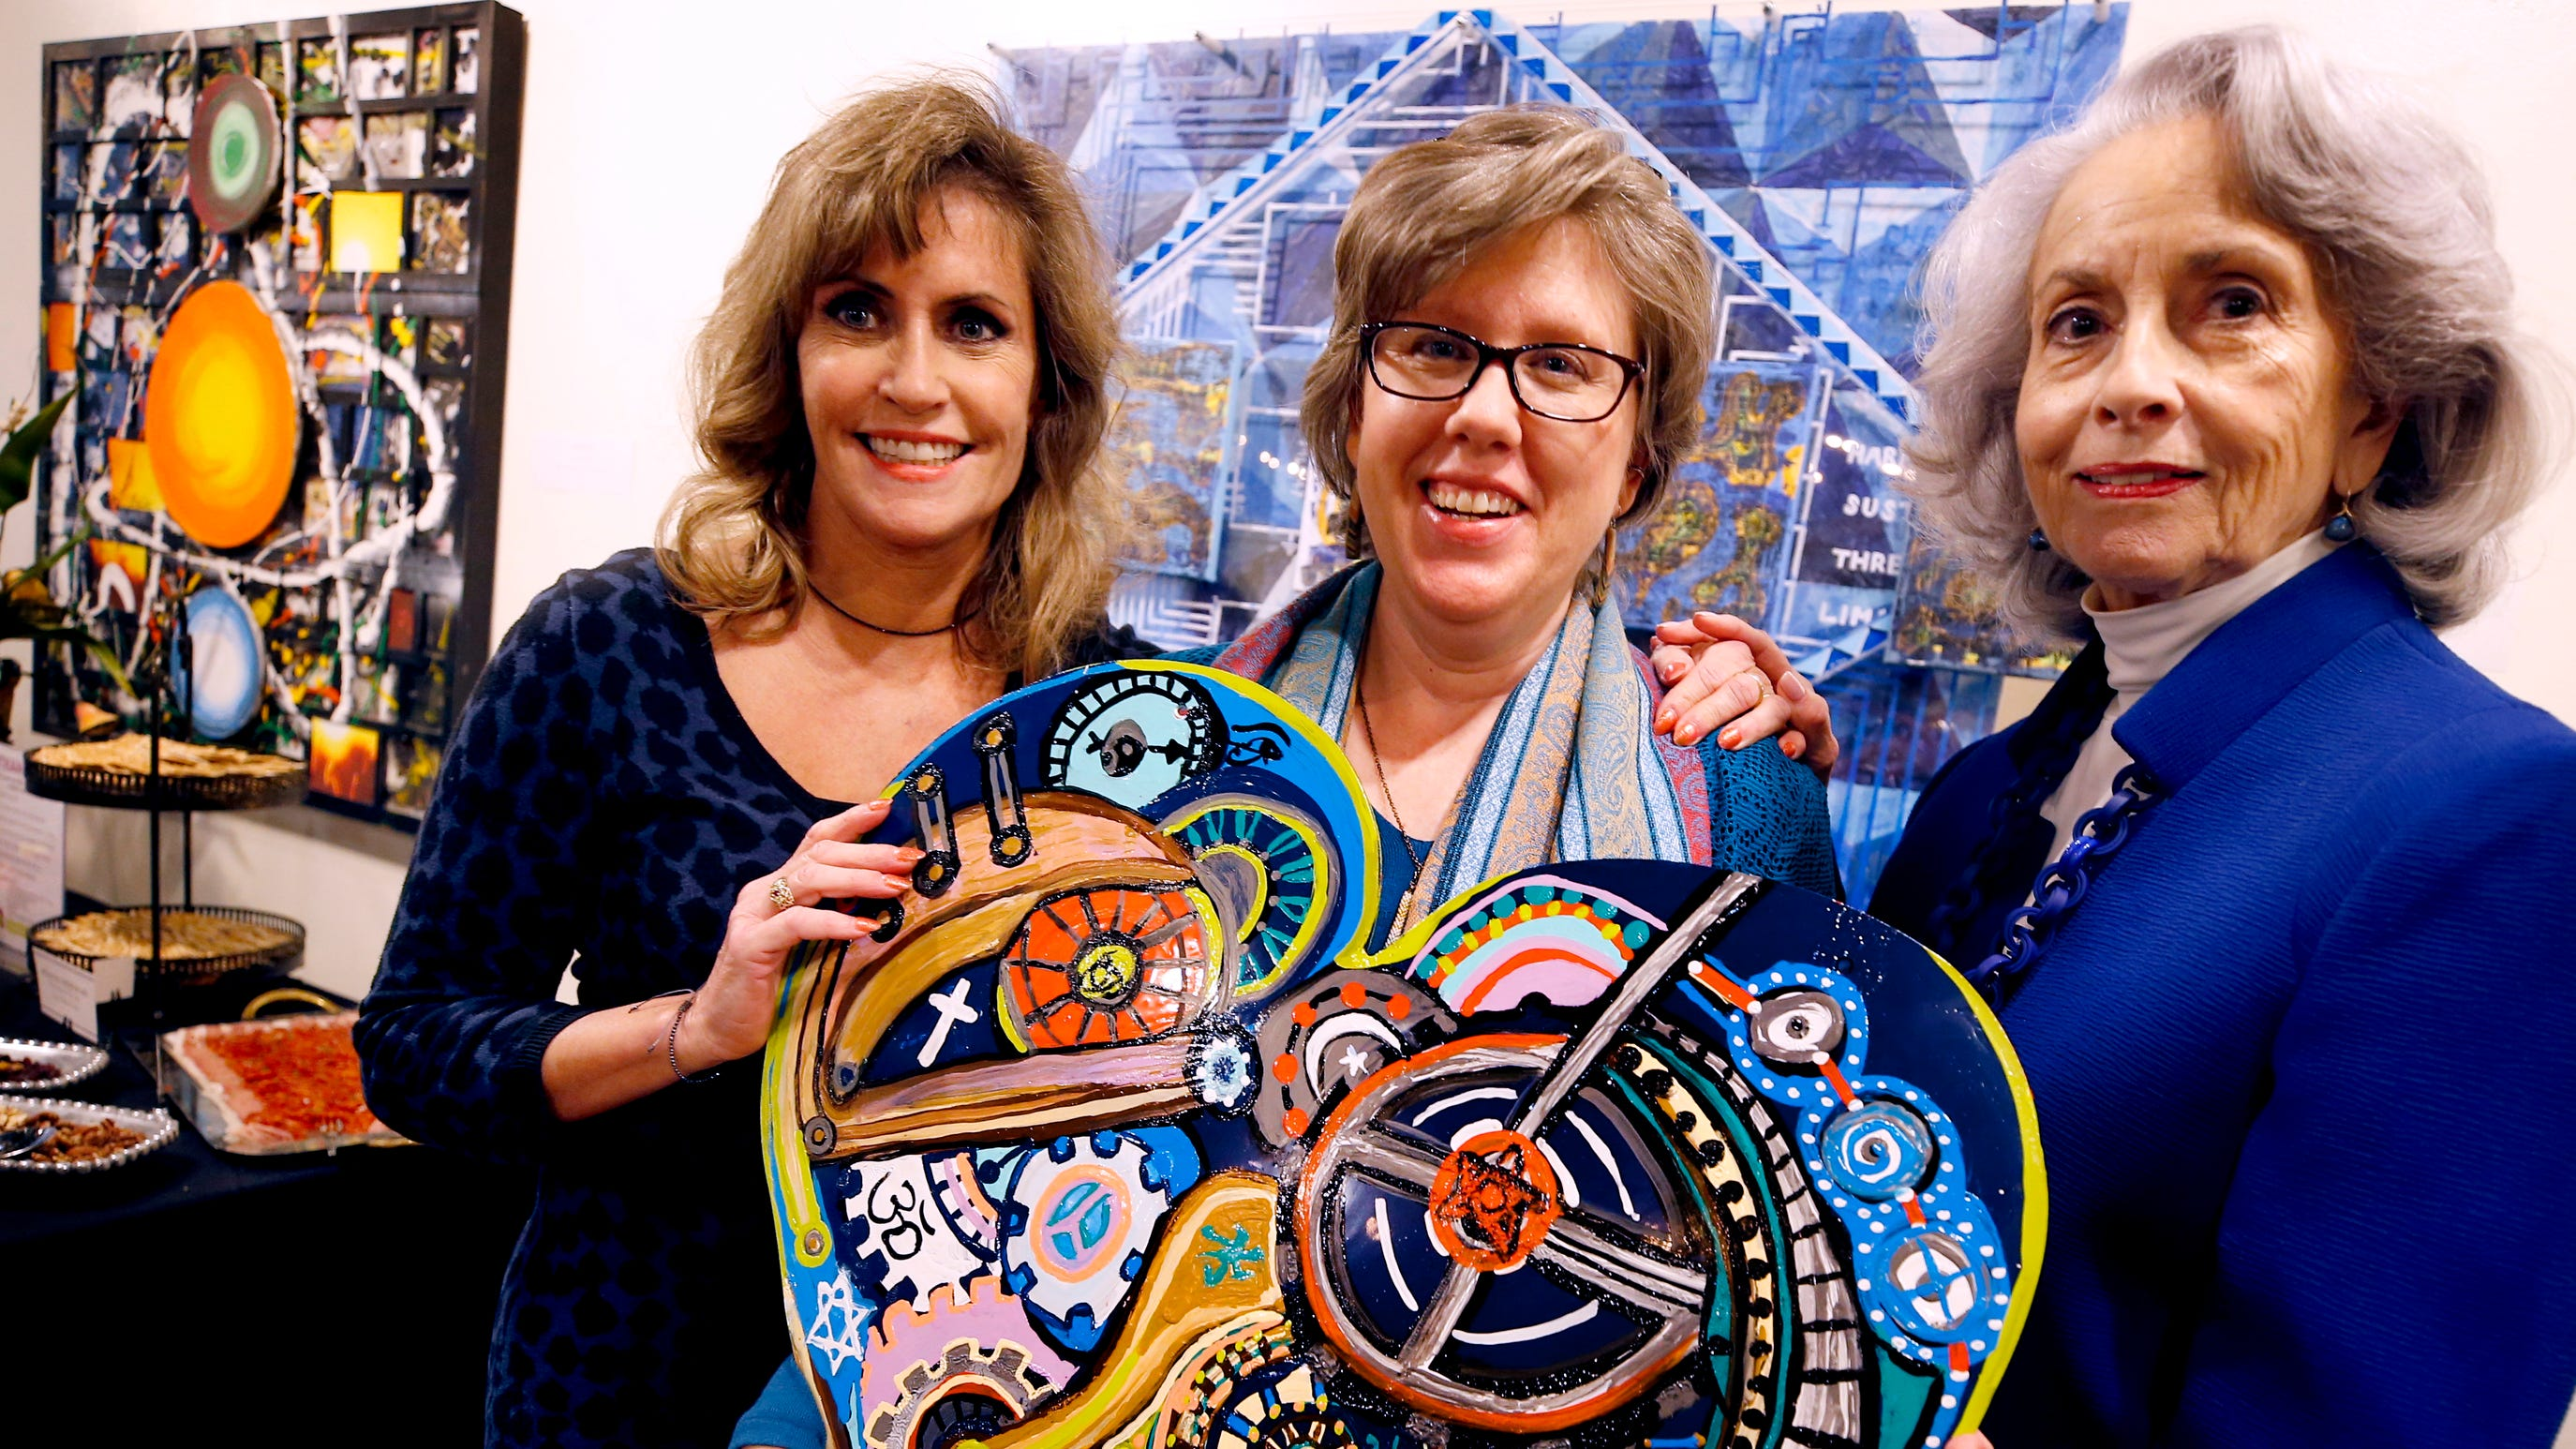 Heading up the formation of the Rutherford Arts Alliance are, from left, former Painter Laureate Ginny Togrye, current Poet Laureate Kory Wells, and Andrea Loughry, vice-chair of the Tennessee Arts Commission.